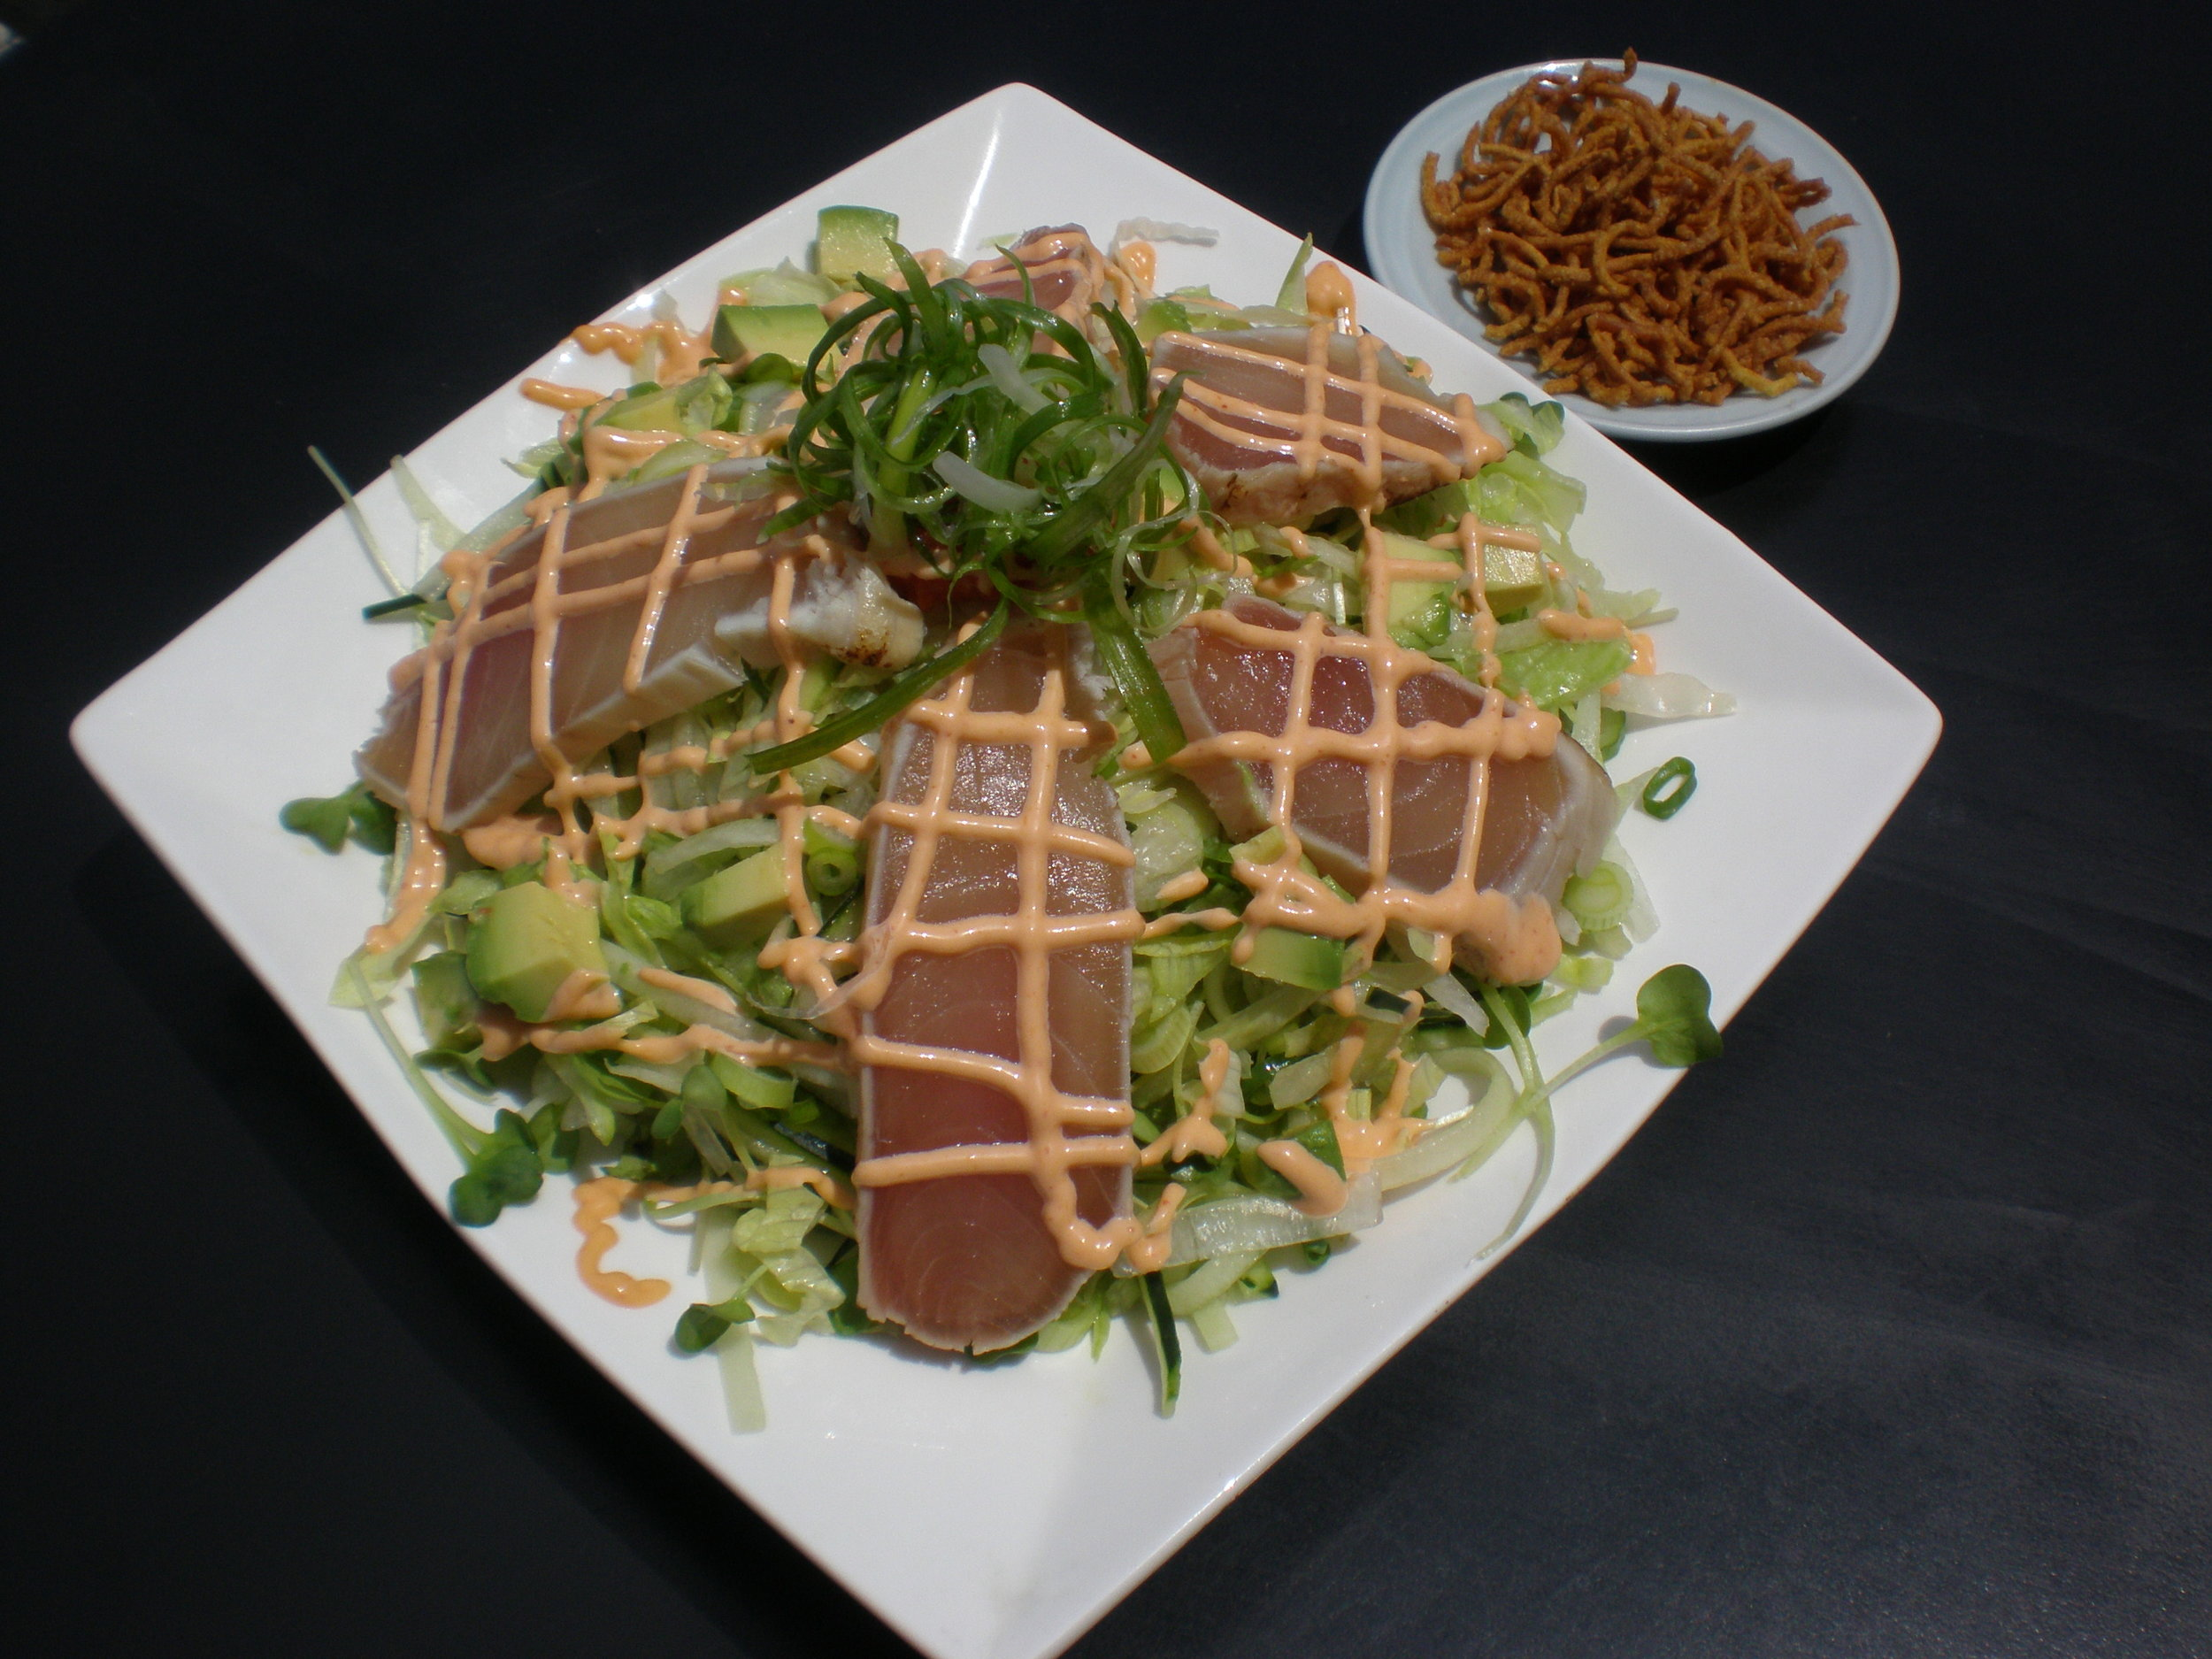 Spicy Albacore Tuna Salad